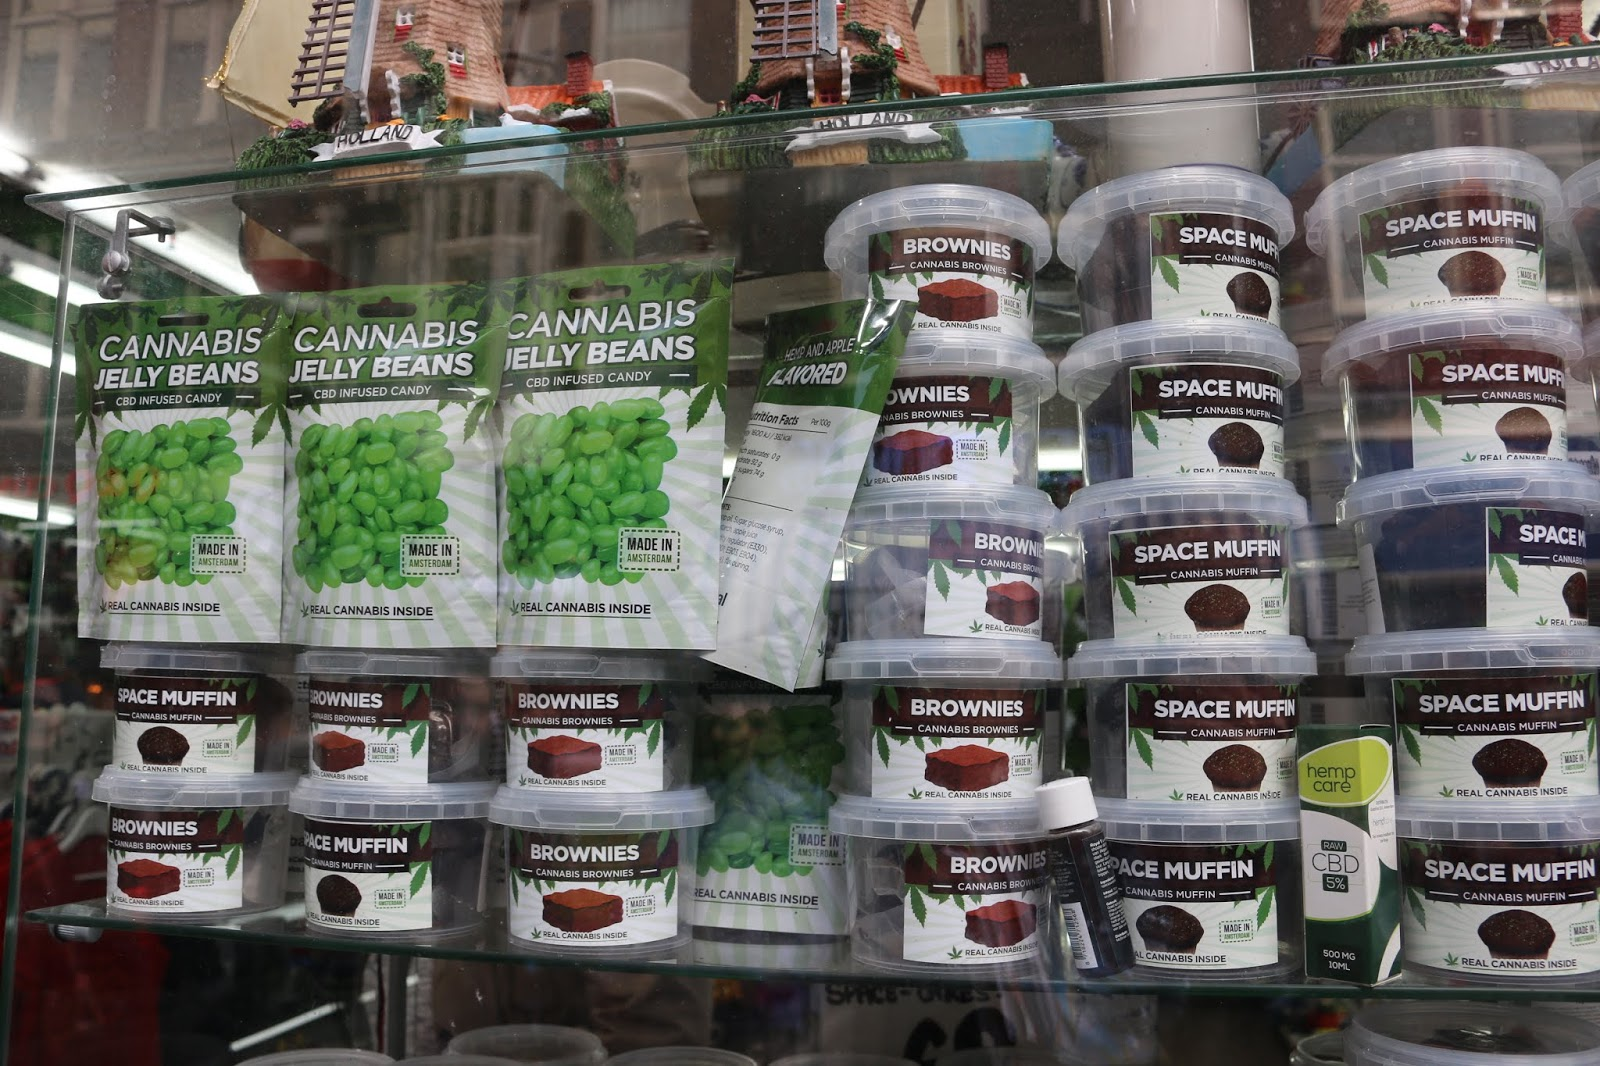 Cannabis Edibles Jelly Beans, Brownies, Muffins Amsterdam